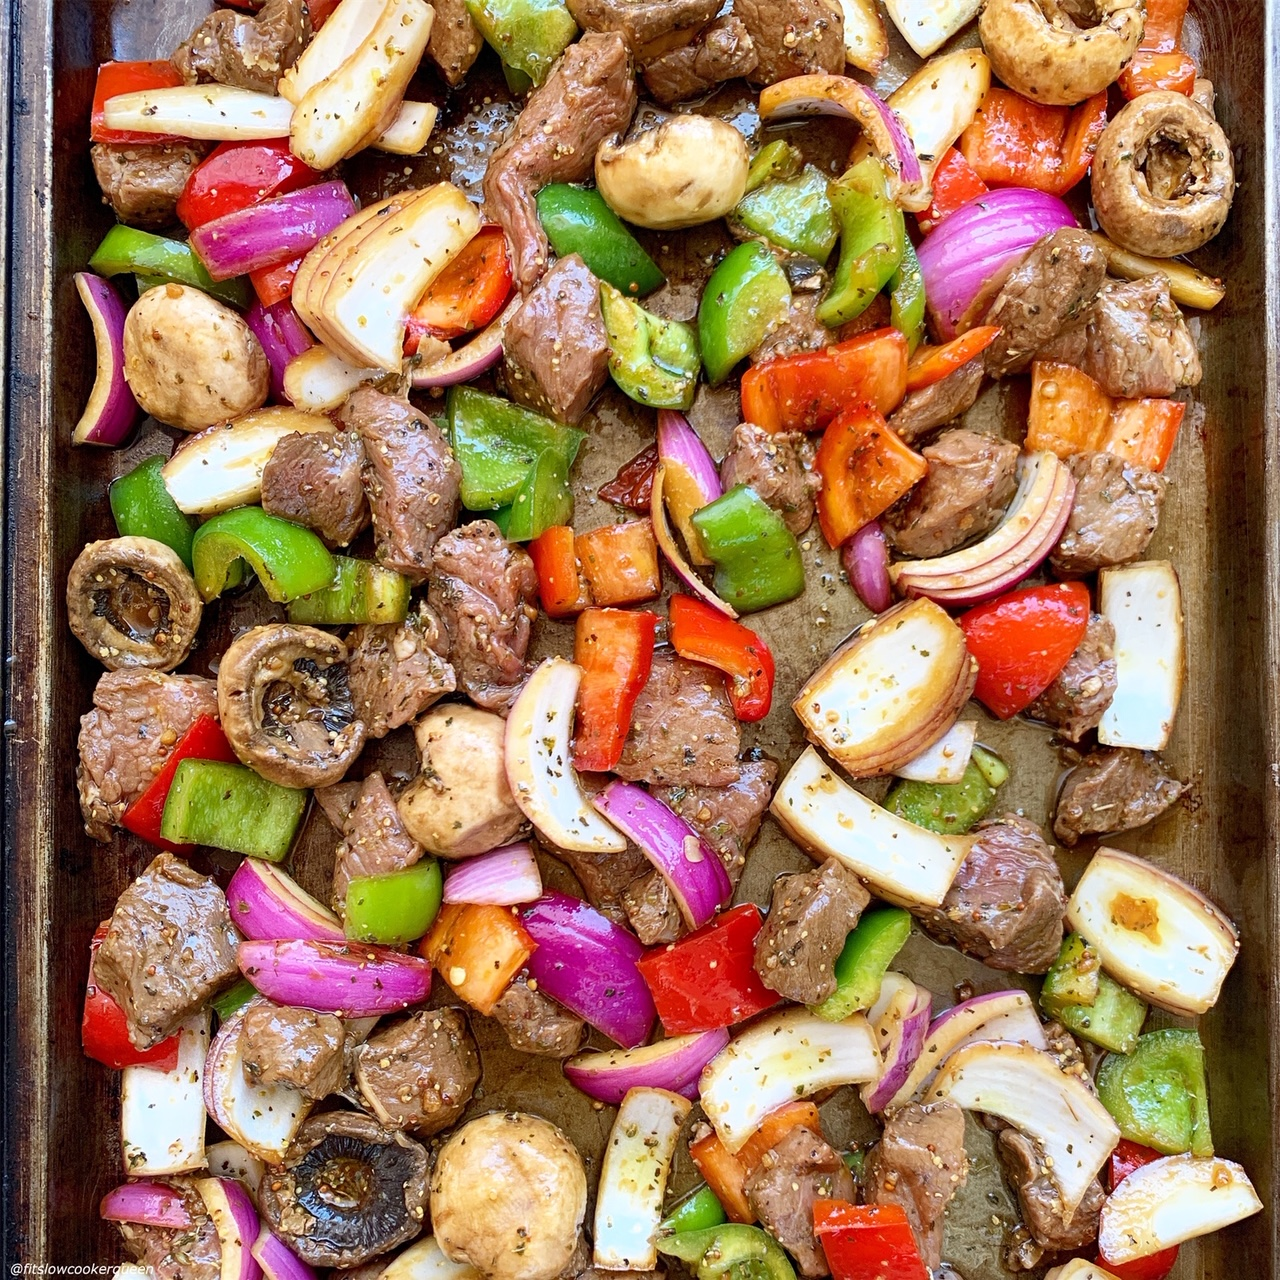 marinated meat and veggies on sheet pan